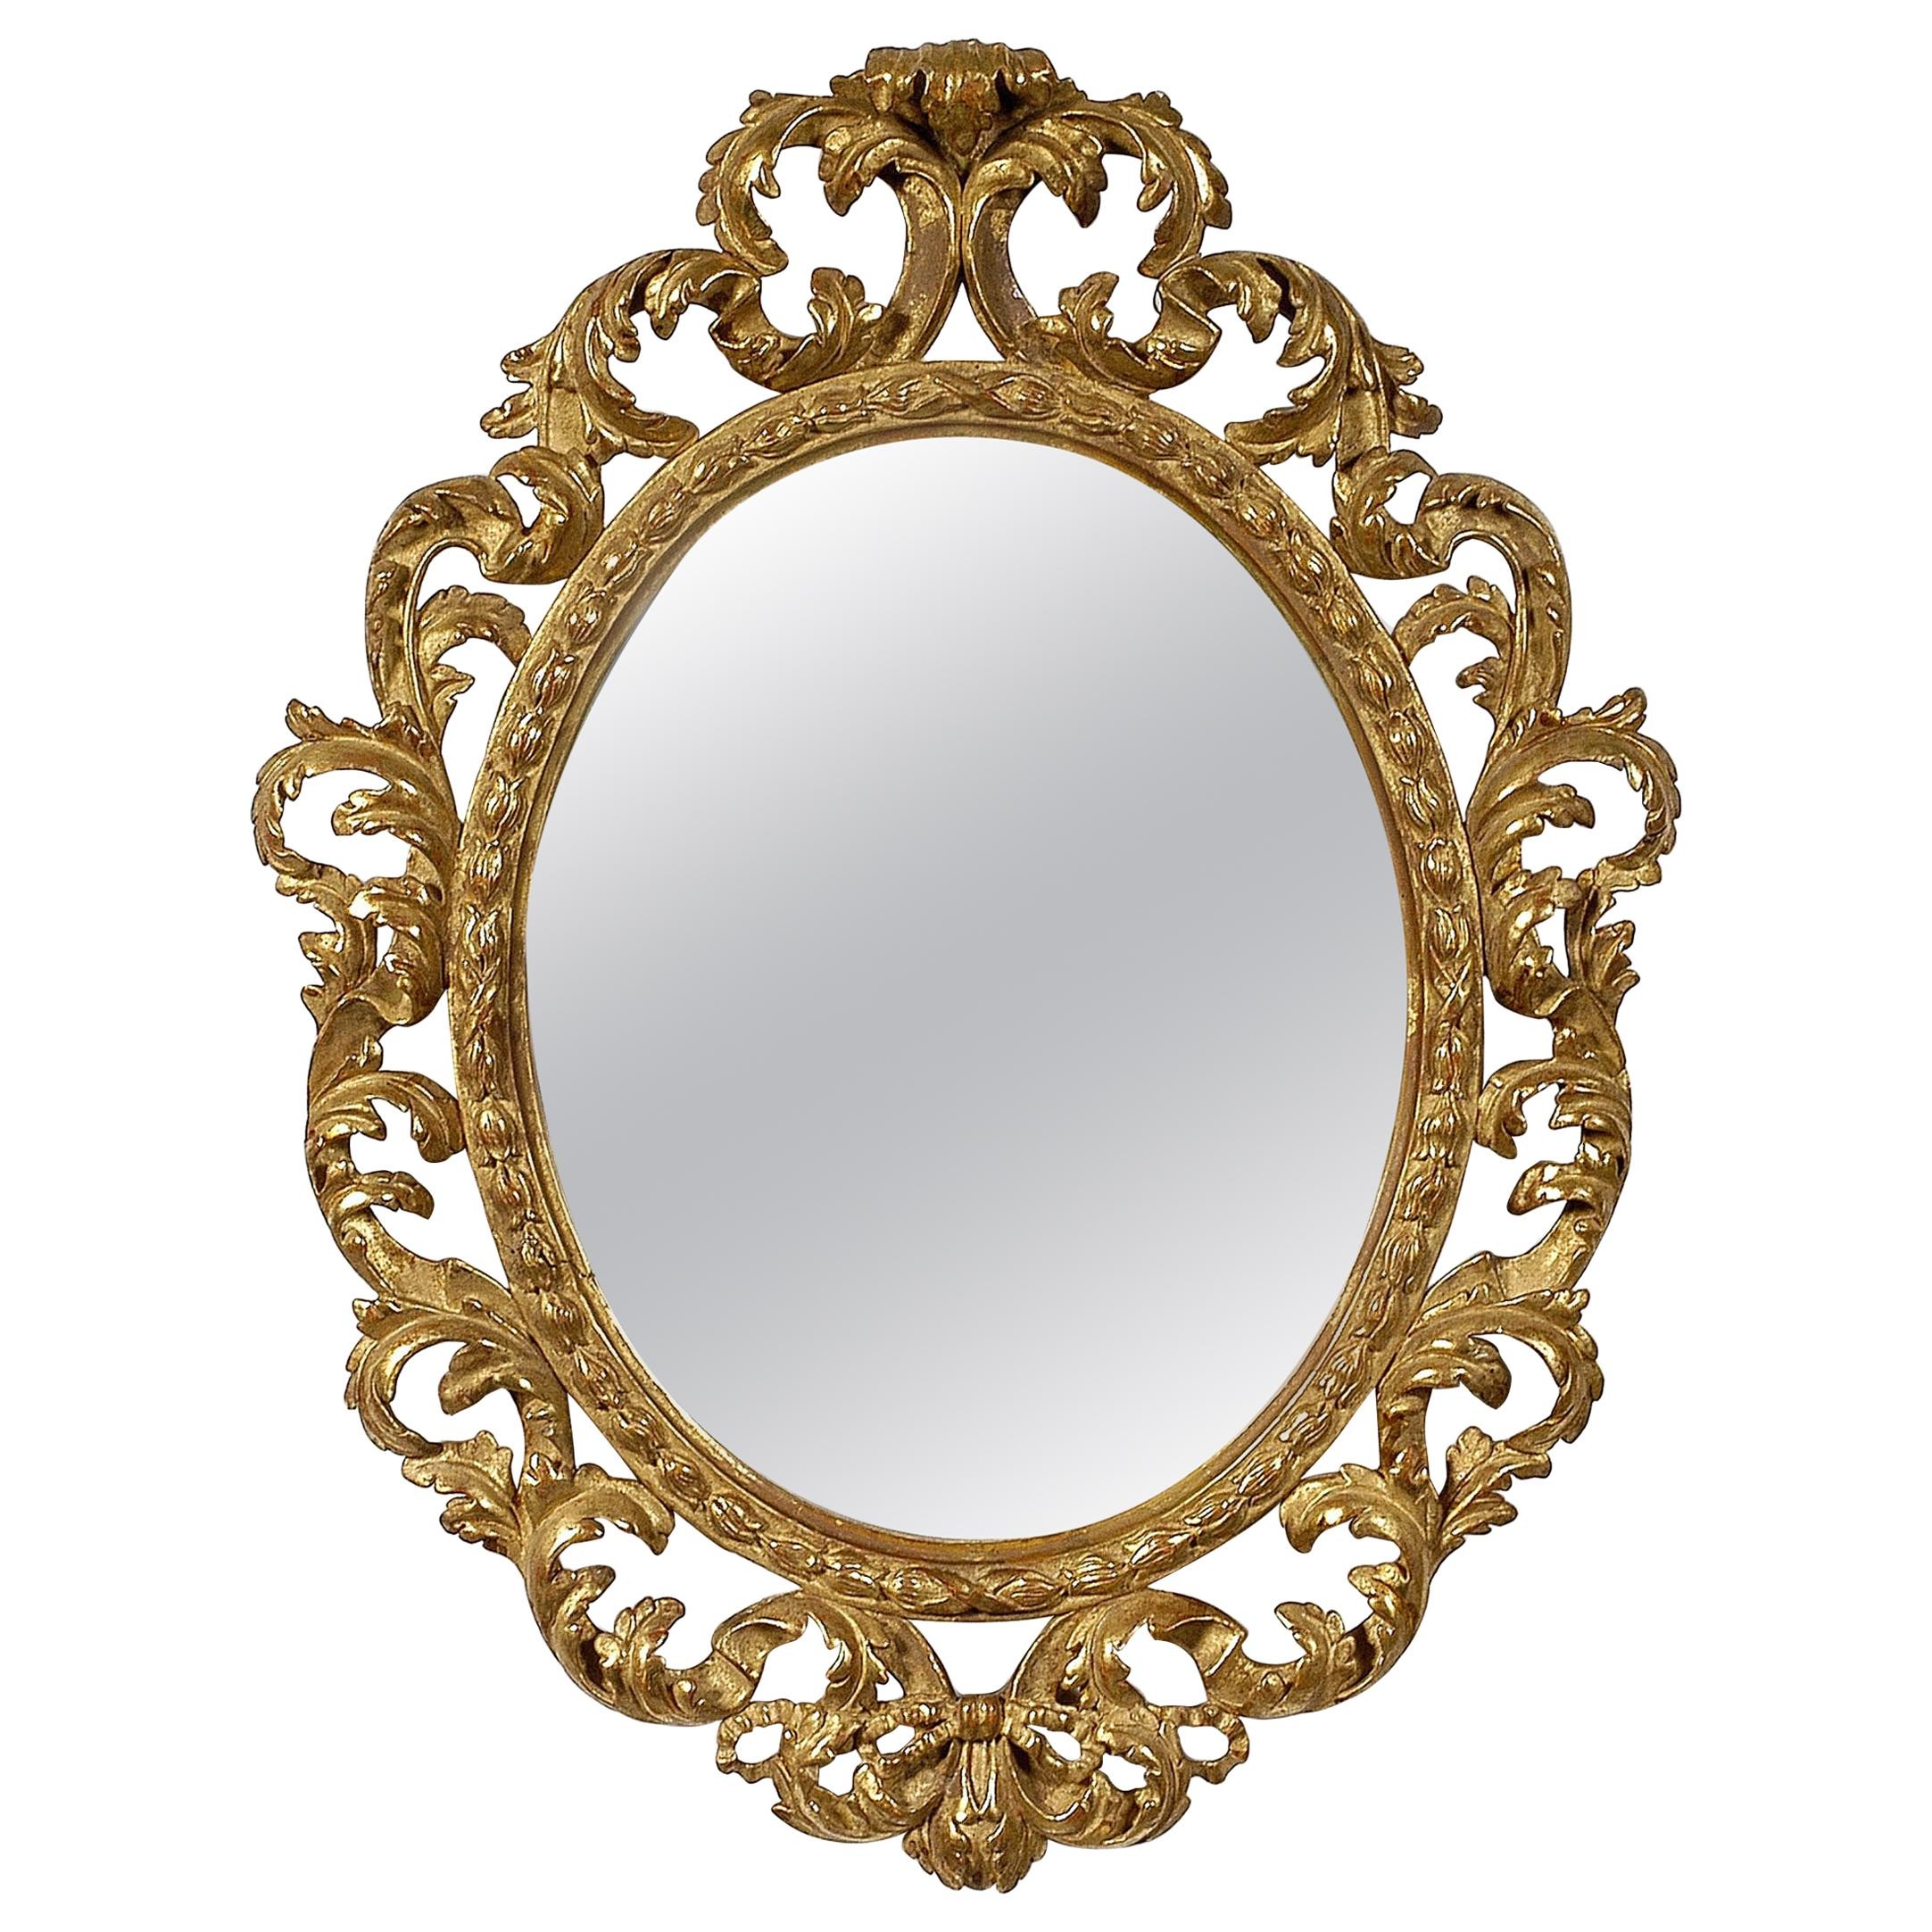 Neoclassical Baroque Leaf Gold Foil Hand Carved Wooden Mirror, 1970